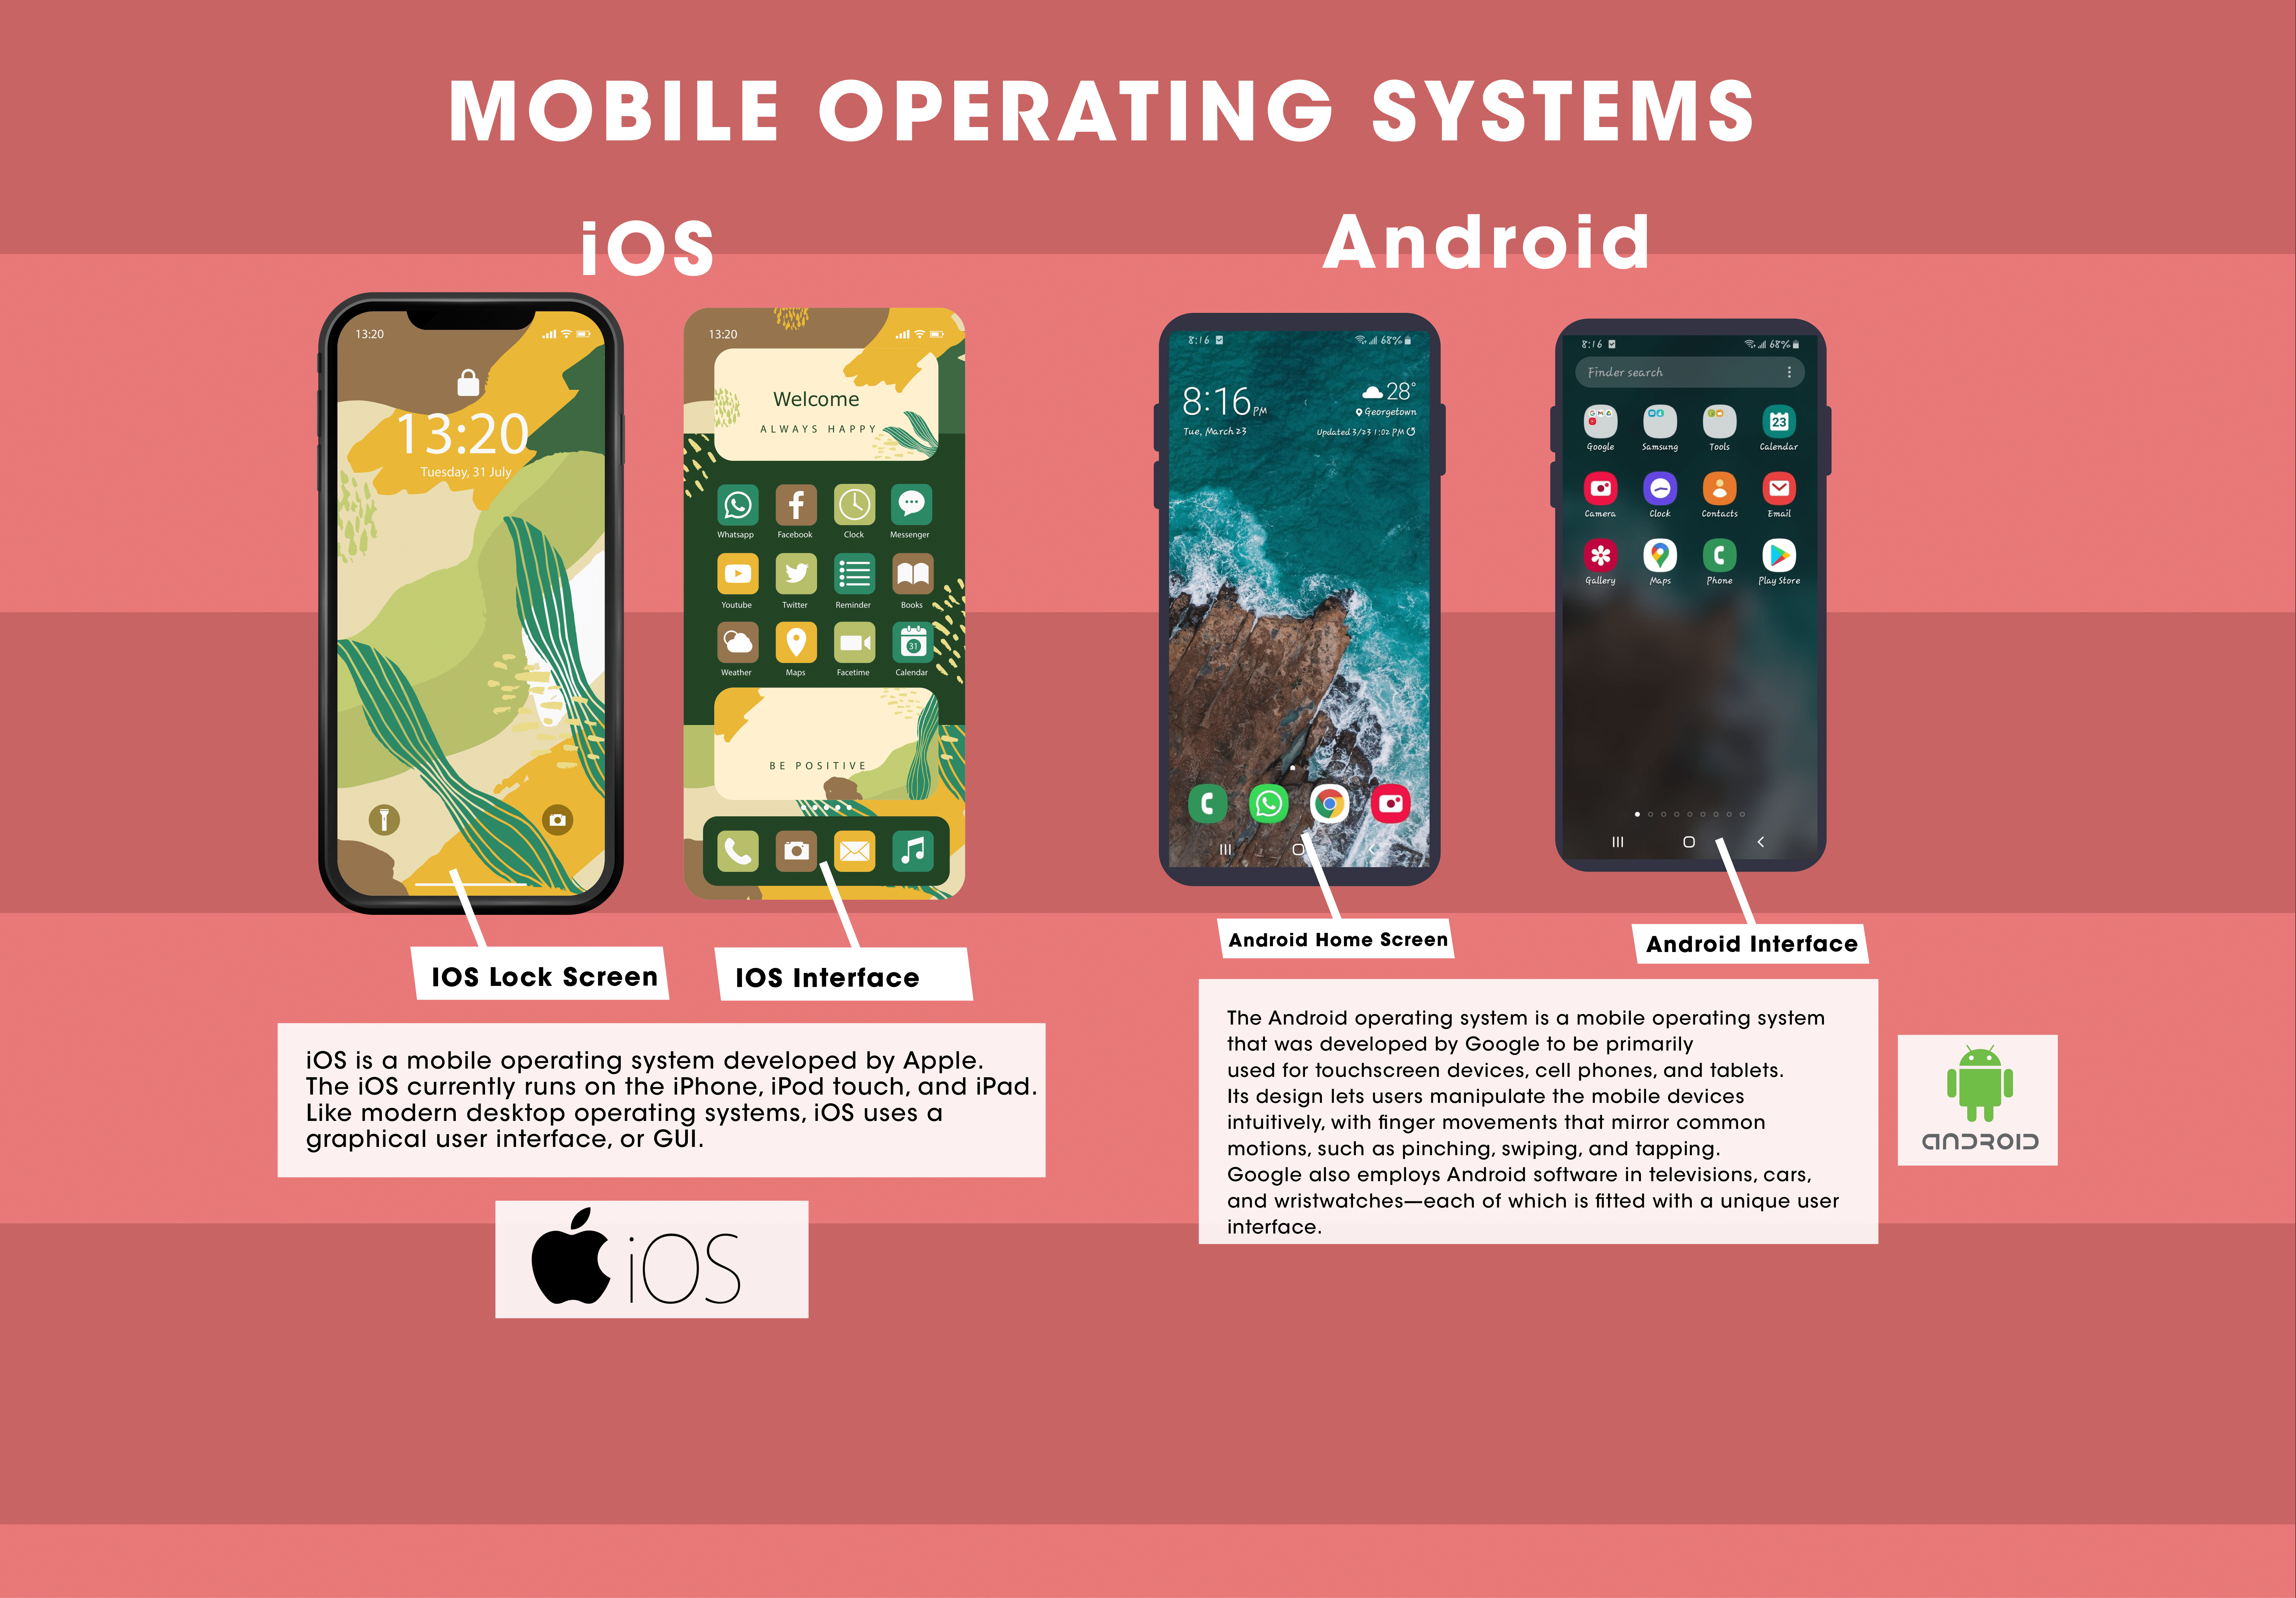 Graphic showing iOS and Android mobile operating systems